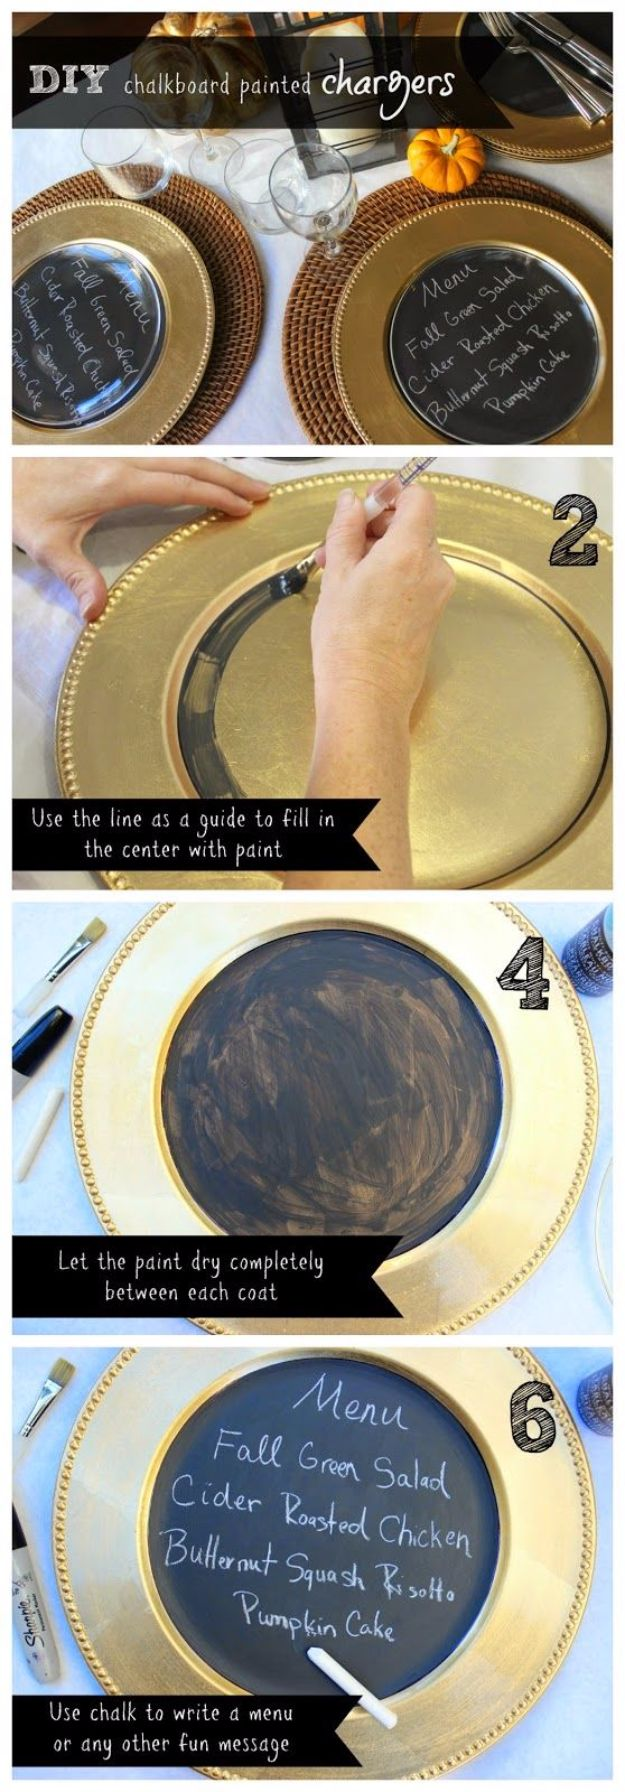 DIY Chalkboard Paint Ideas for Furniture Projects, Home Decor, Kitchen, Bedroom, Signs and Crafts for Teens. |  Chalkboard Painted Chargers  |  http://diyjoy.com/diy-chalkboard-paint-ideas